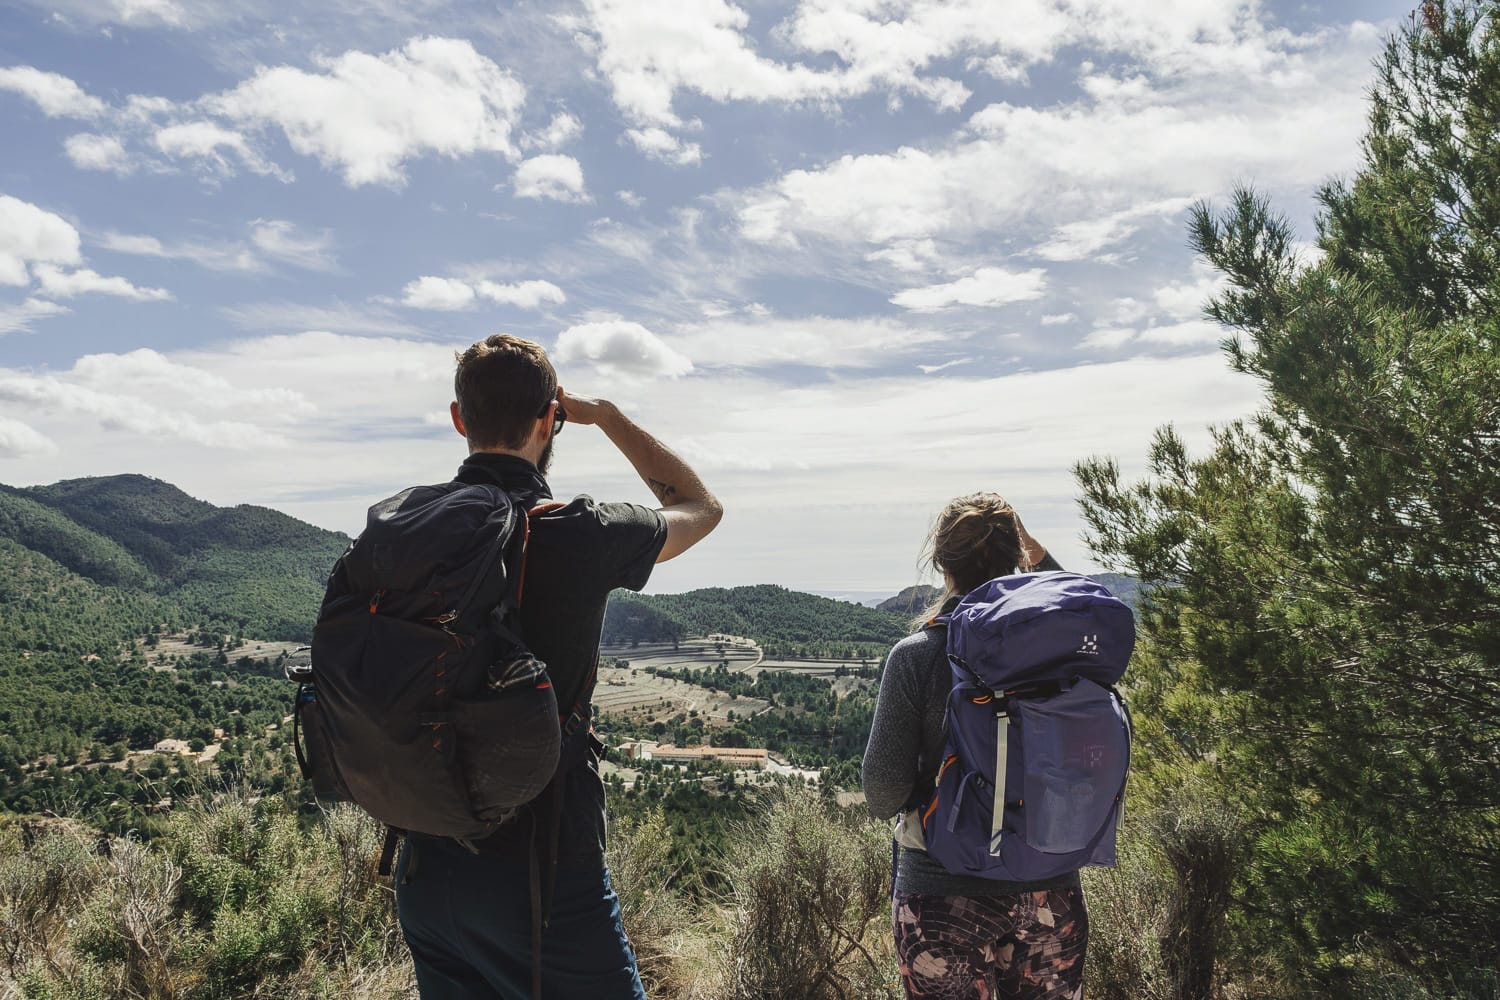 Hikers admiring the view in Spain